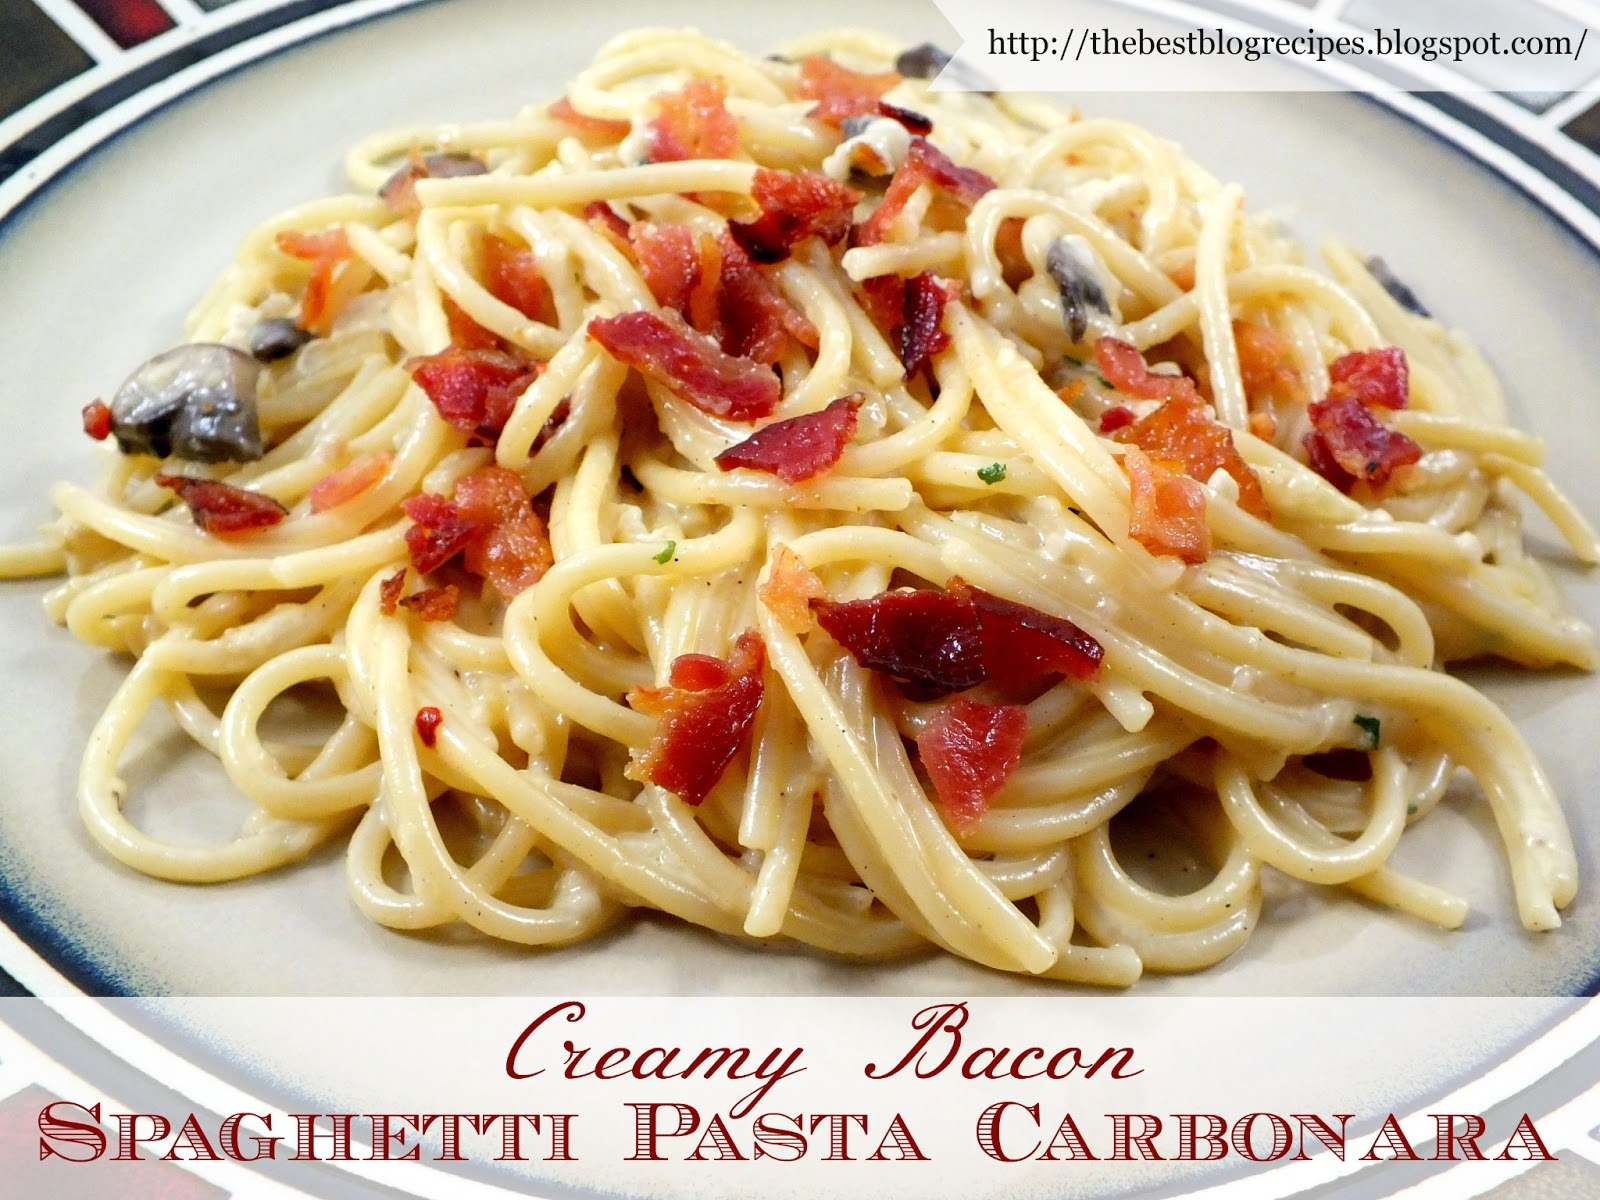 Creamy+Bacon+Spaghetti+Pasta+Carbonara+recipe+from+%7BThe+Best+Blog+Recipes%7D.jpg